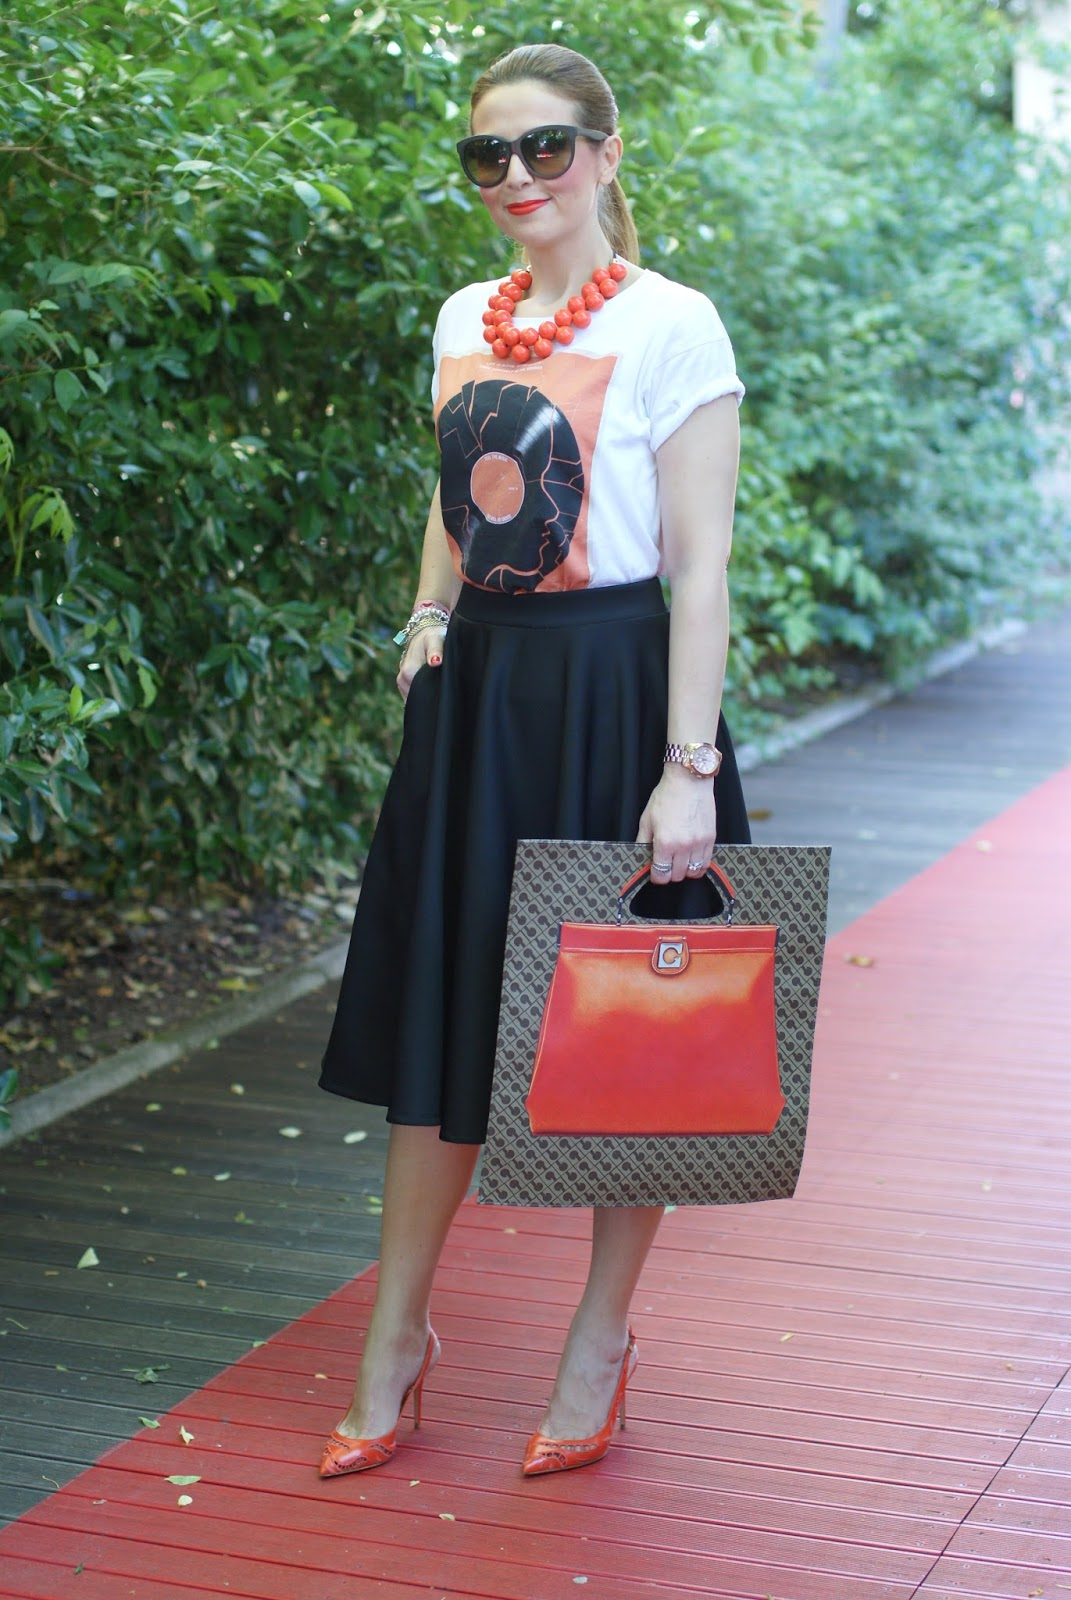 Gherardini bag, Gherardini piattina anniversary 130, Le Silla orange pumps, Asos skirt, Fashion and Cookies fashion blog, fashion blogger